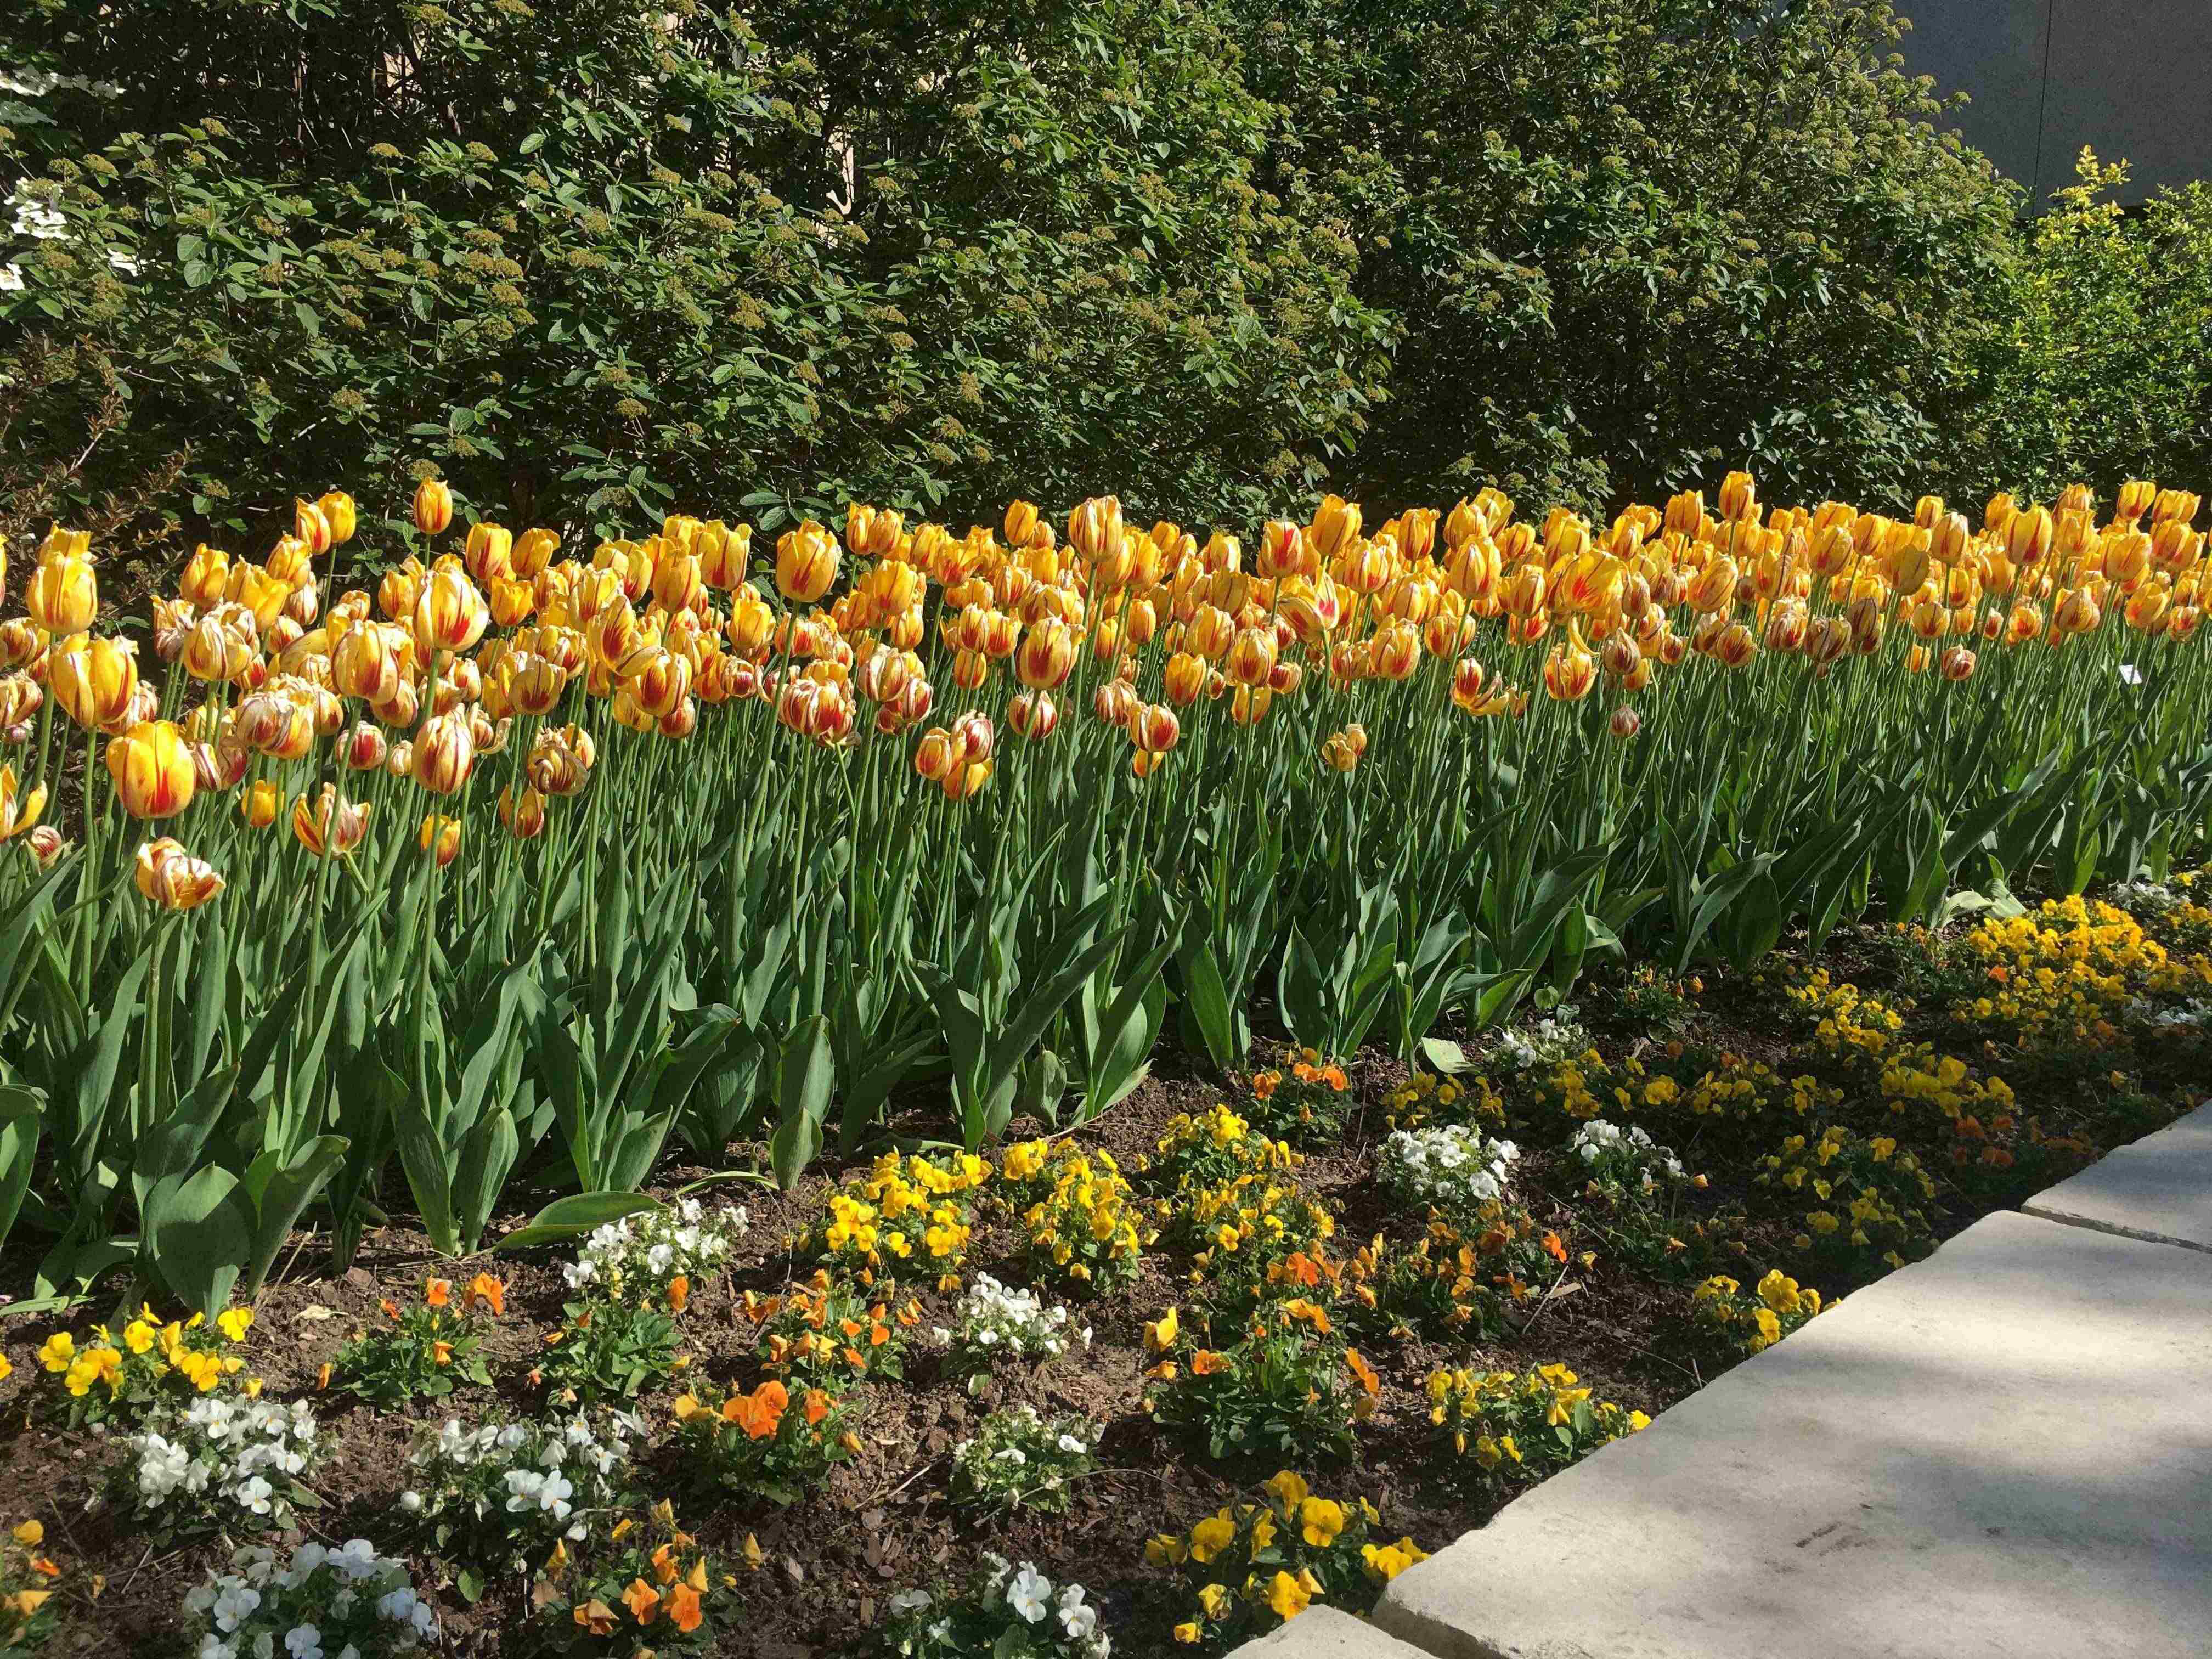 How to choose the best colors to add to your landscape